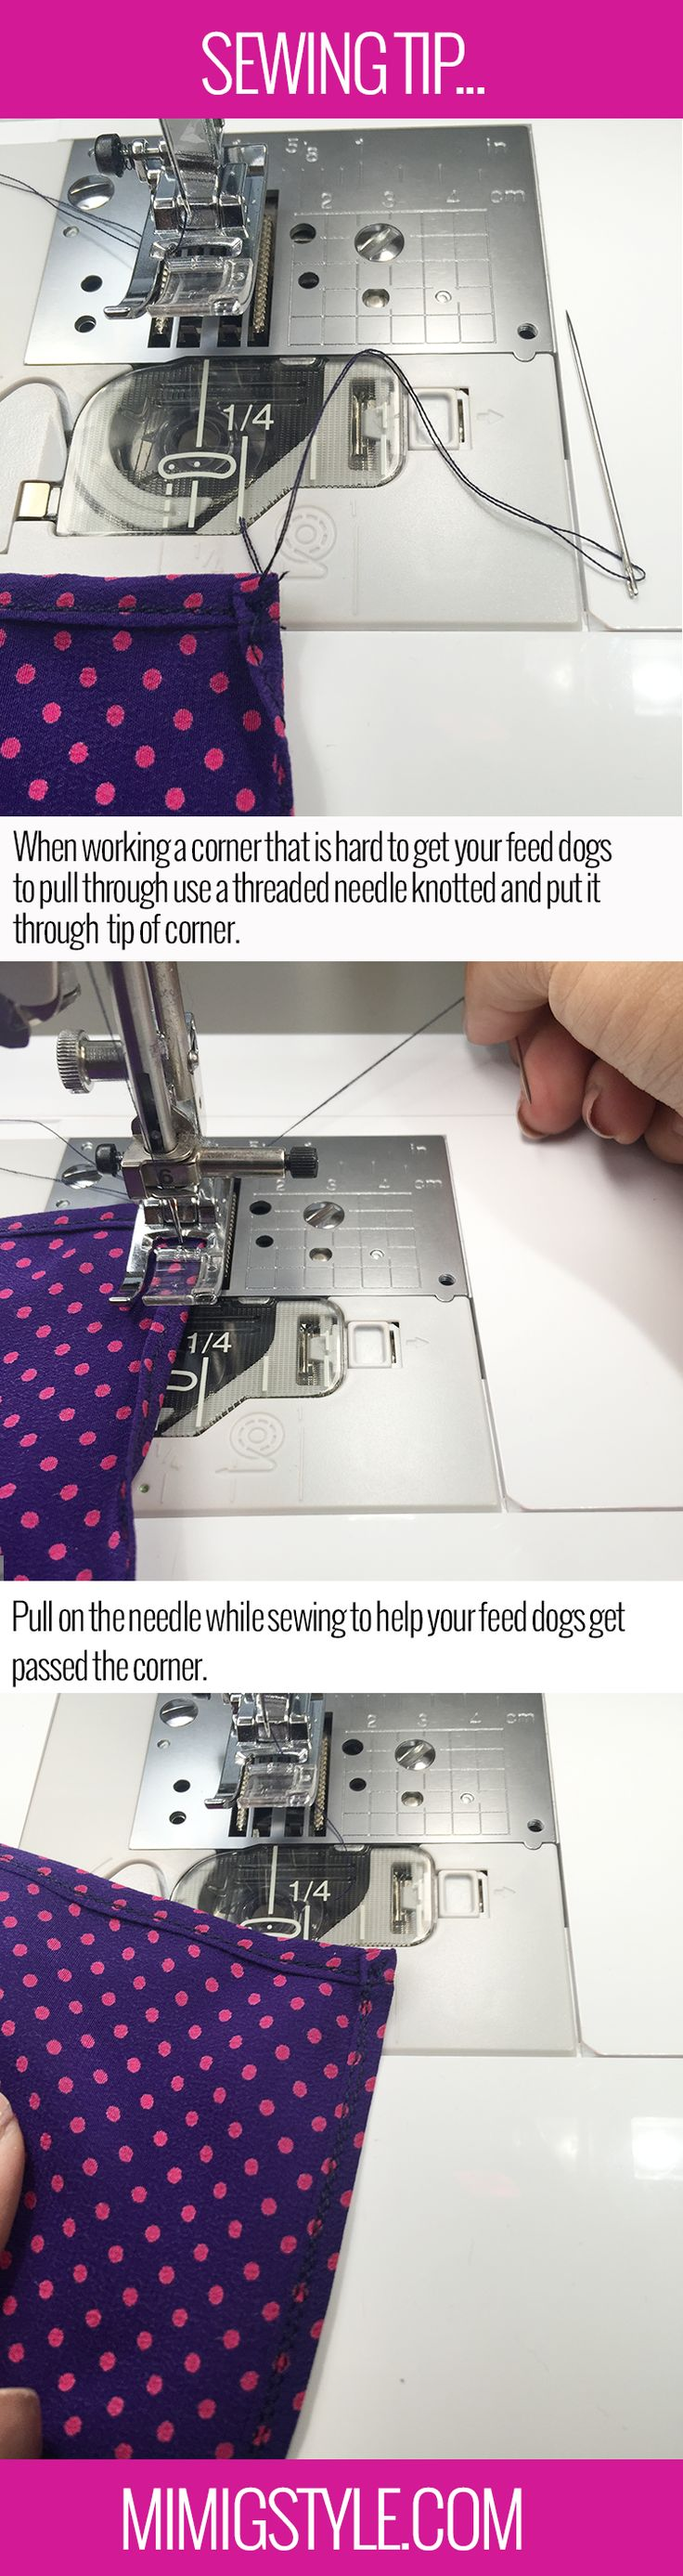 best sewing projects images on pinterest sewing clutch bags